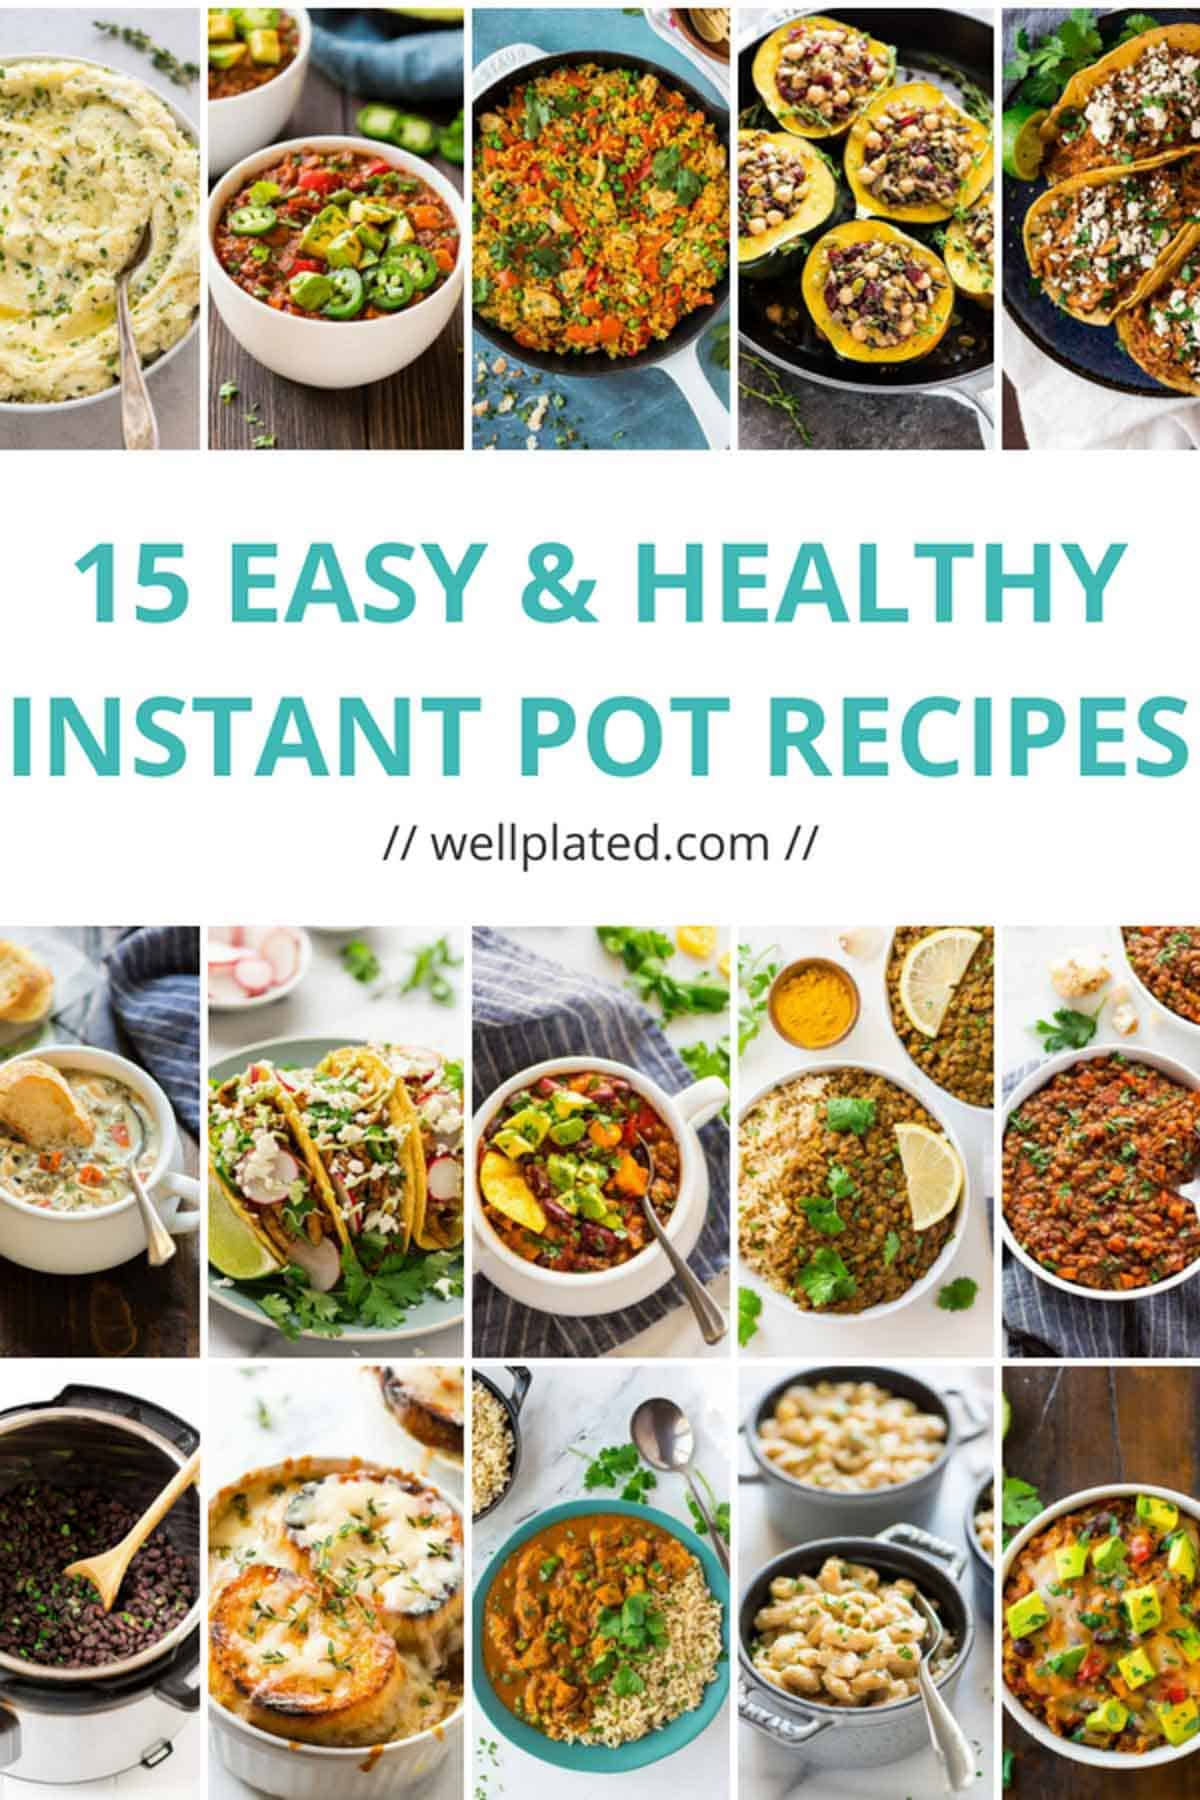 15 of the BEST Healthy Instant Pot recipes! Easy, family friendly recipe collection for the pressure cooker. List includes Instant Pot chicken recipes, to Instant Pot vegetarian recipes, to Instant Pot stews, to Instant Pot Indian recipes, to sides and more! This list has something for everyone. #wellplated #instantpot #pressurecooker